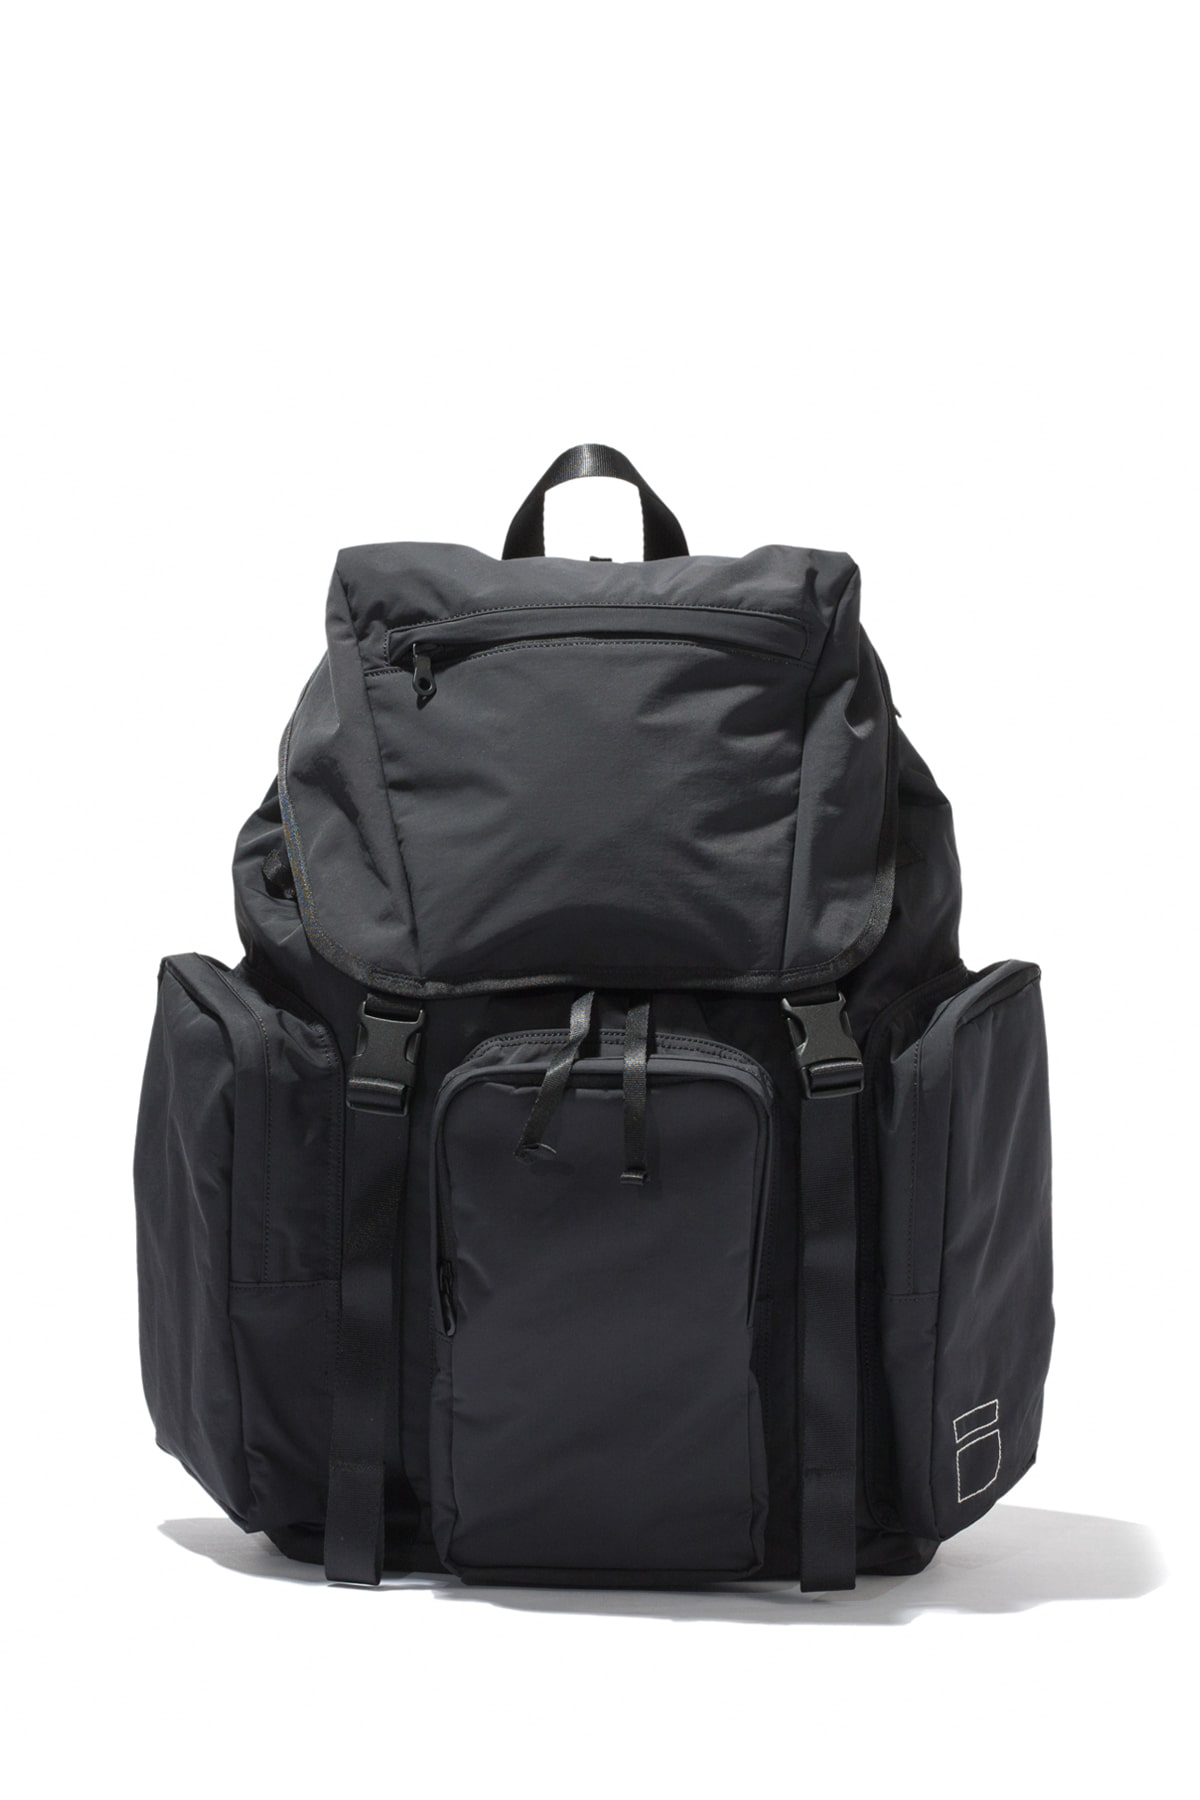 Blankof : PLG 01 28L Double Clasp Pack (Black)